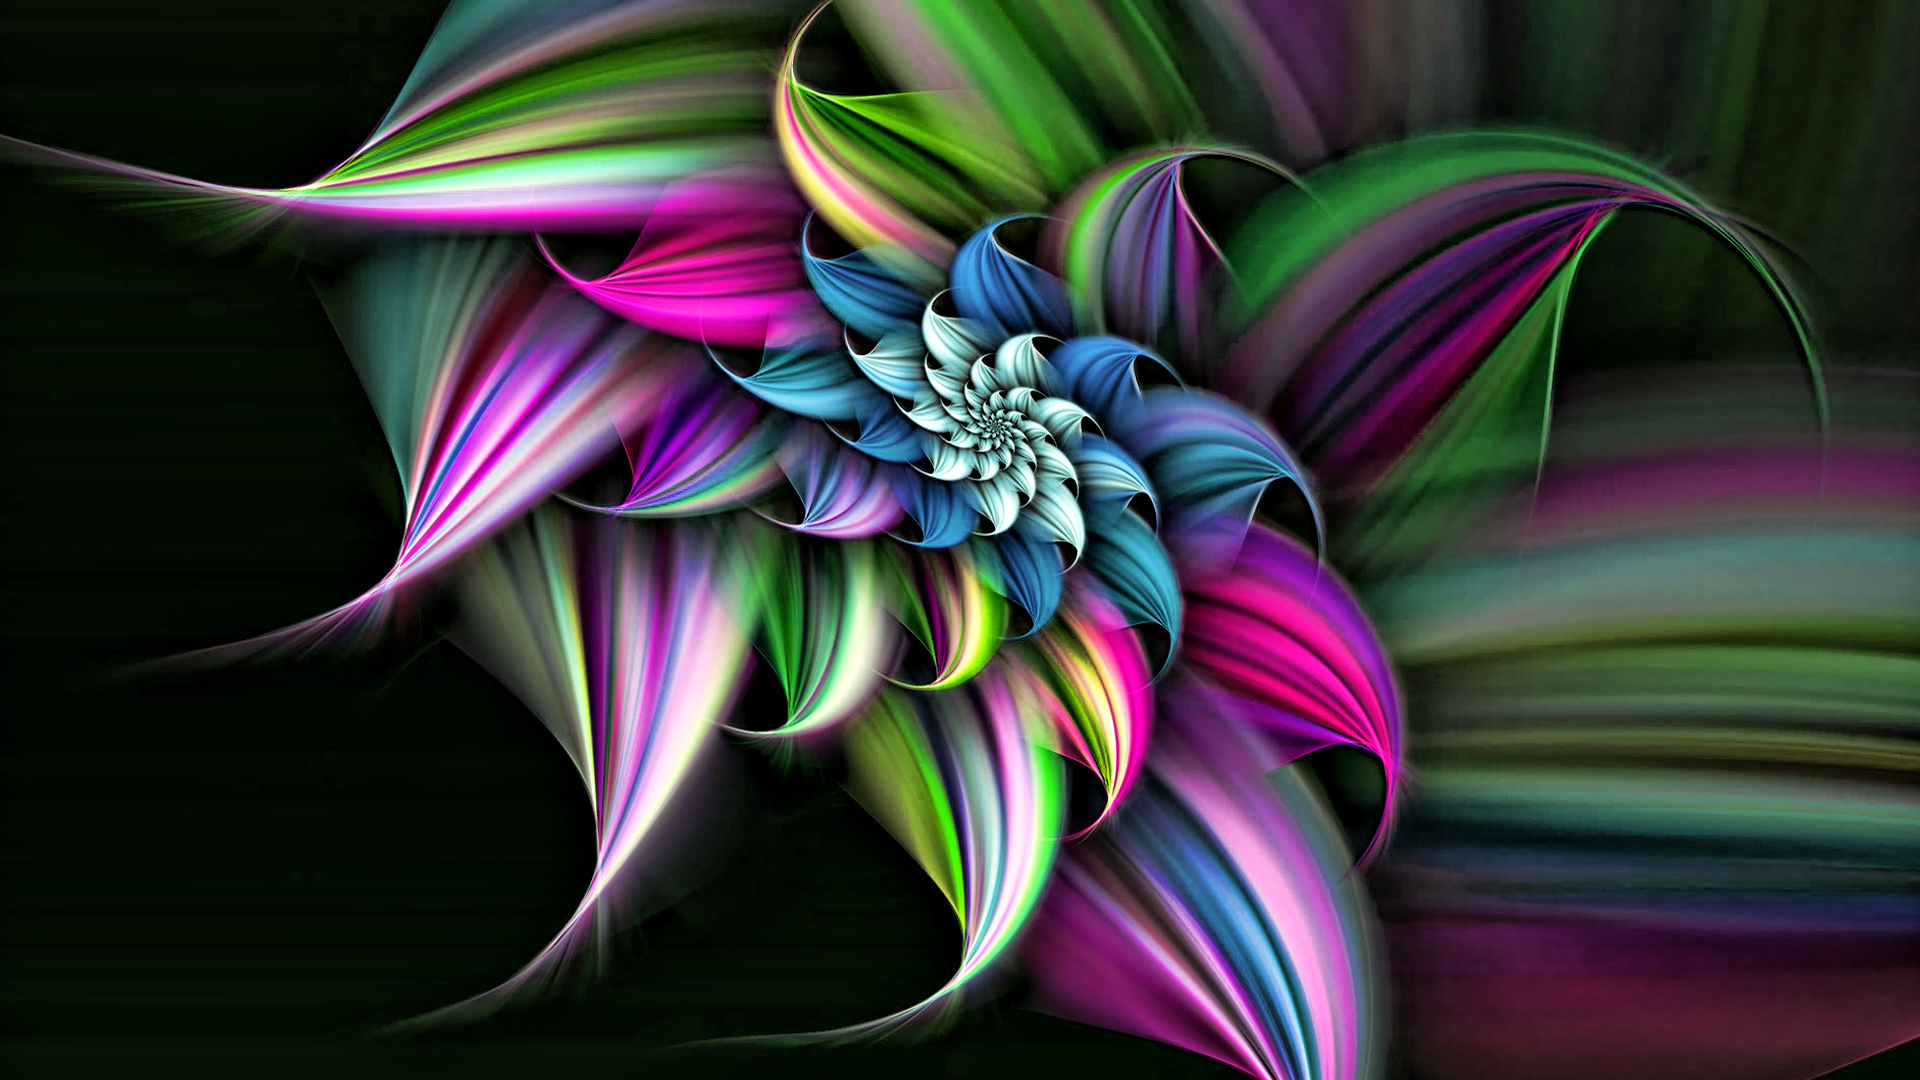 Free 3d colorful flowers wallpaper wallpapersafari Free 3d